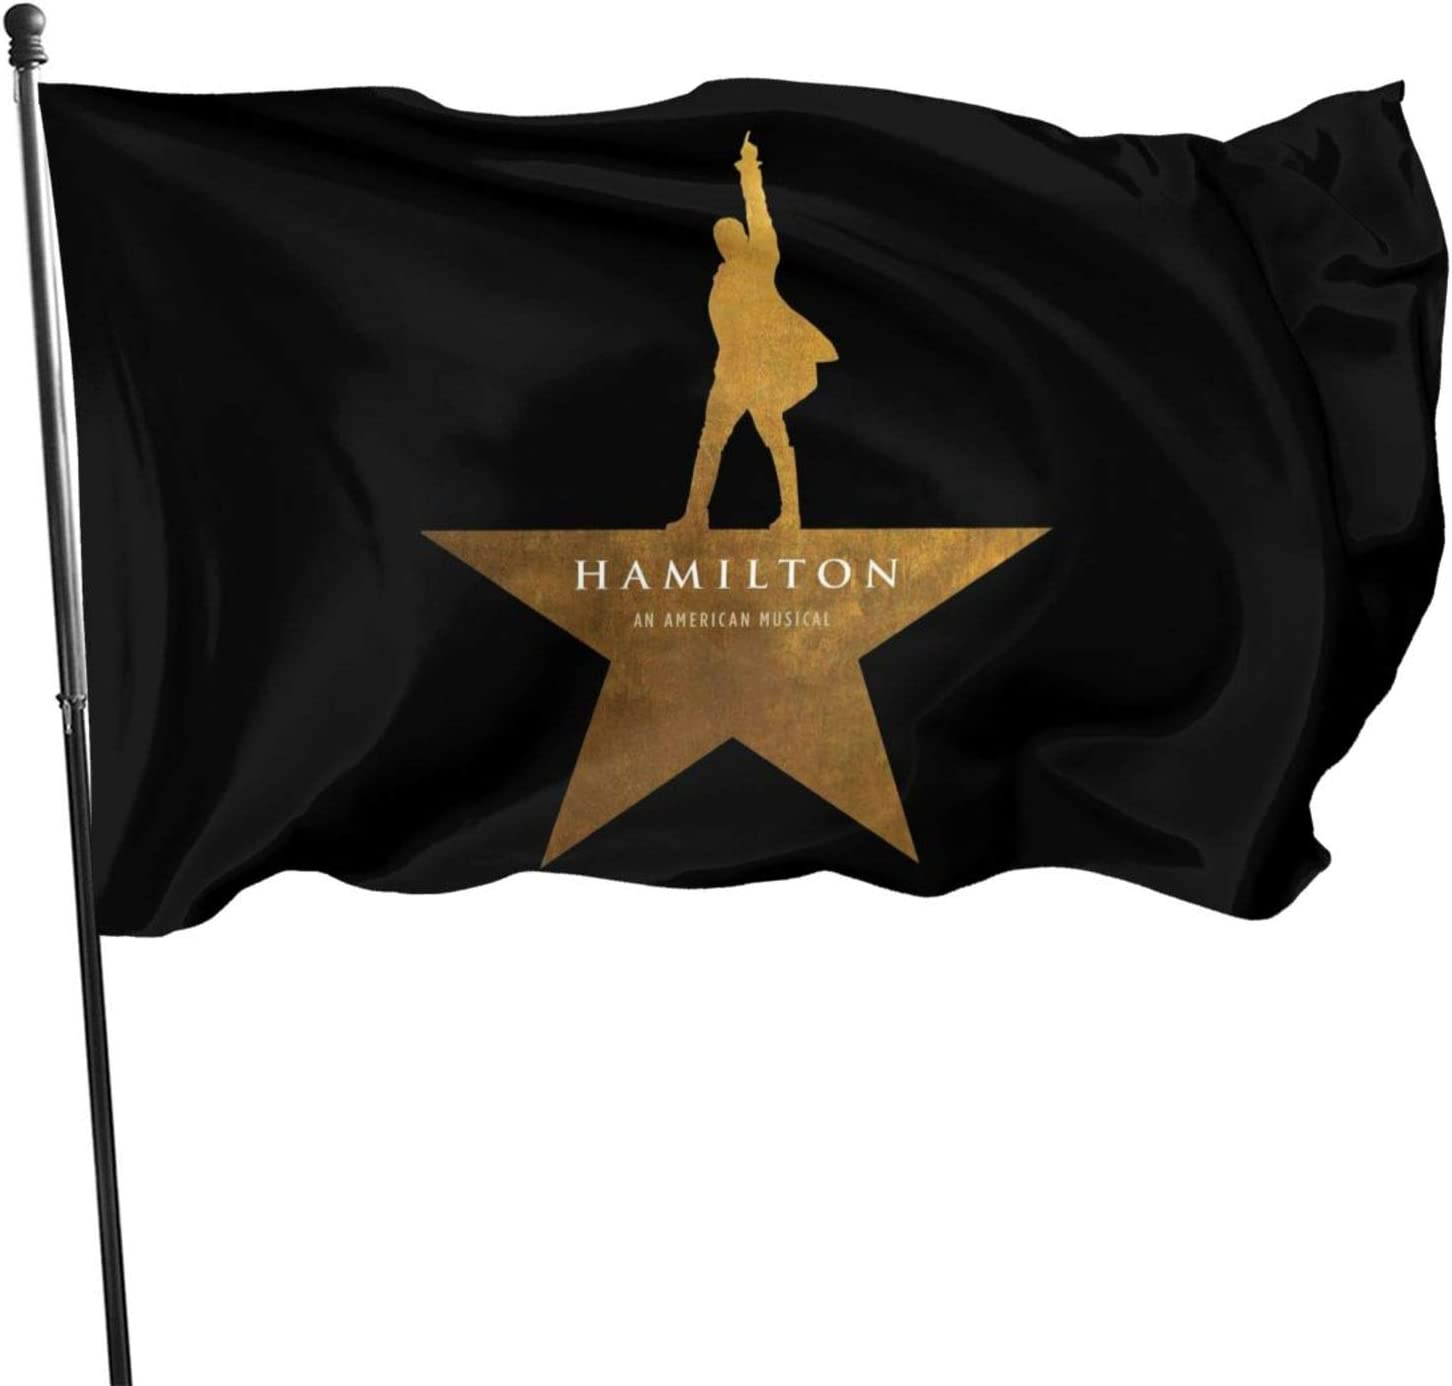 Hamilton The Musical Fashion Garden Flag Festival Welcome Banner Party Decorative Flags Black One Size